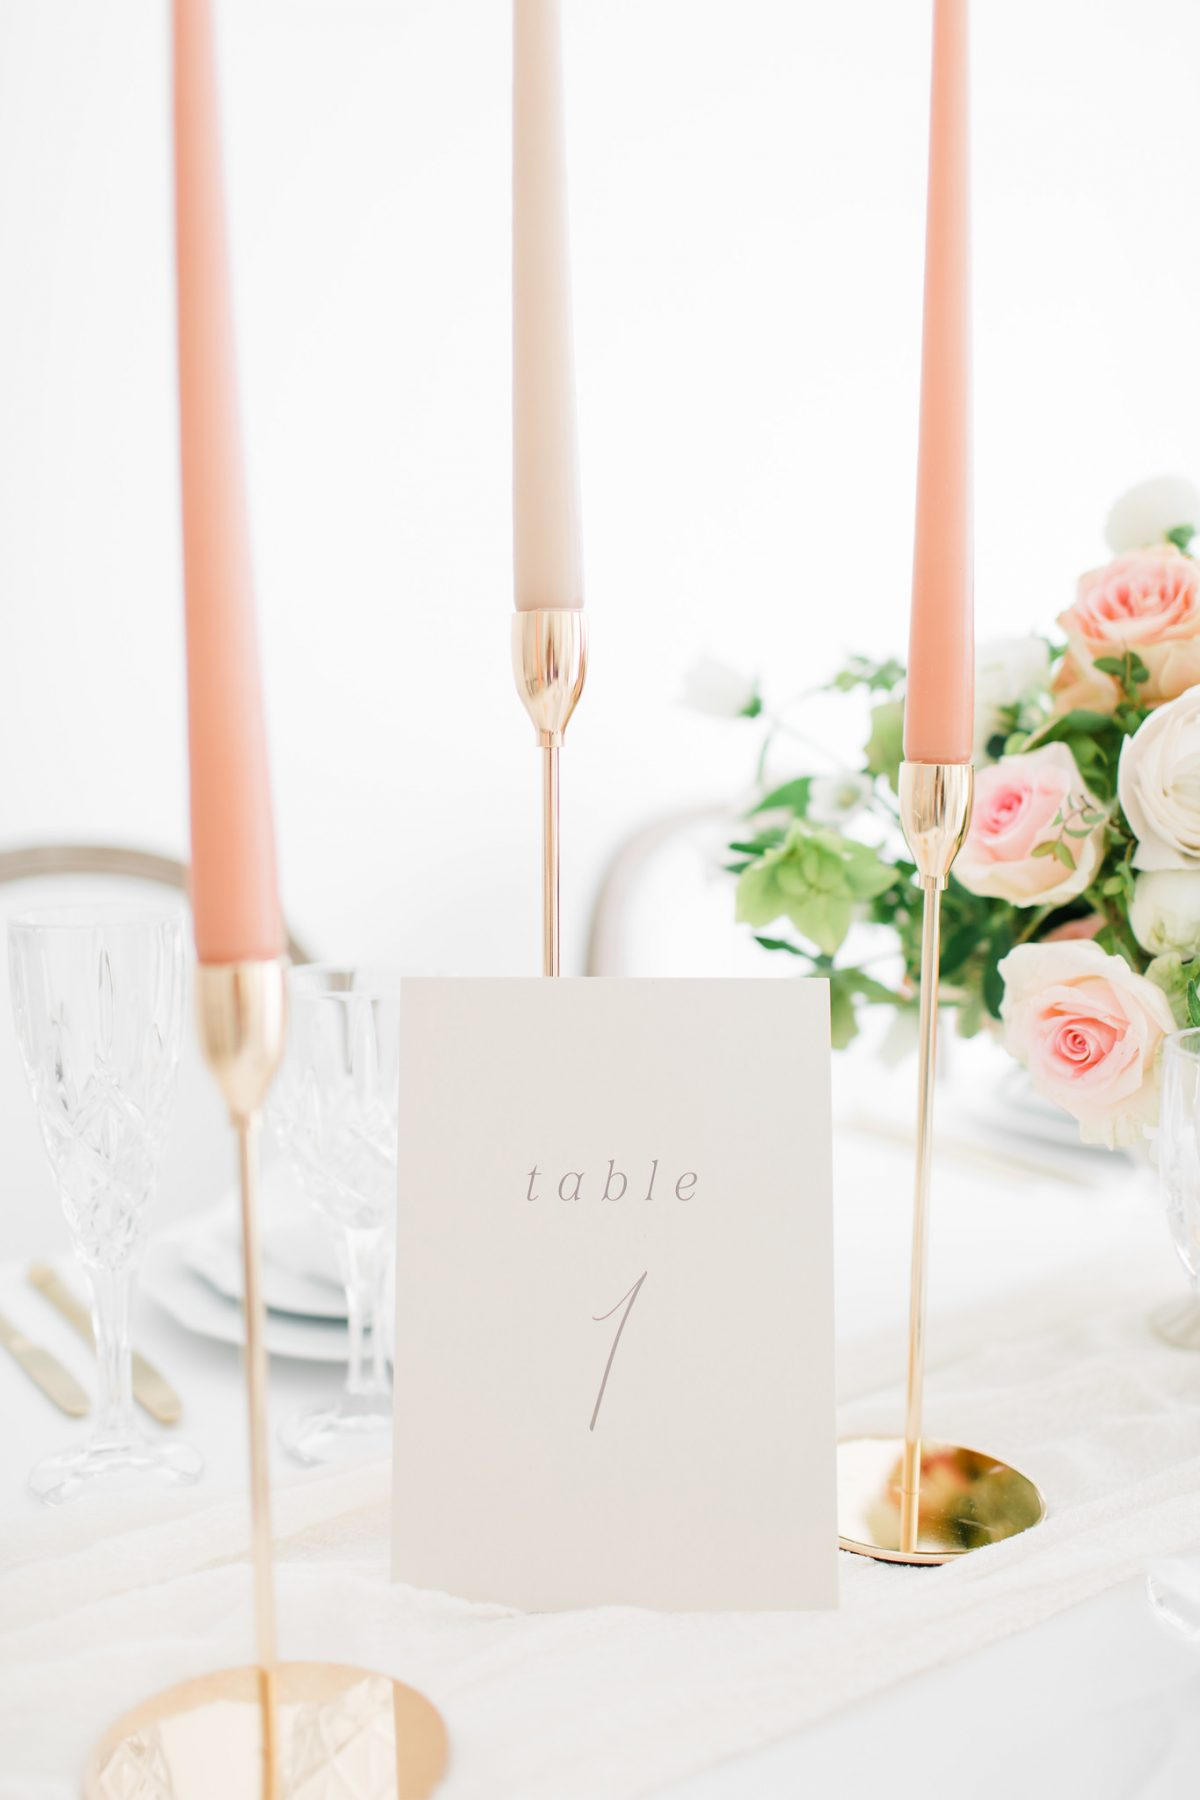 Table 1 table number next to coral candlesticks